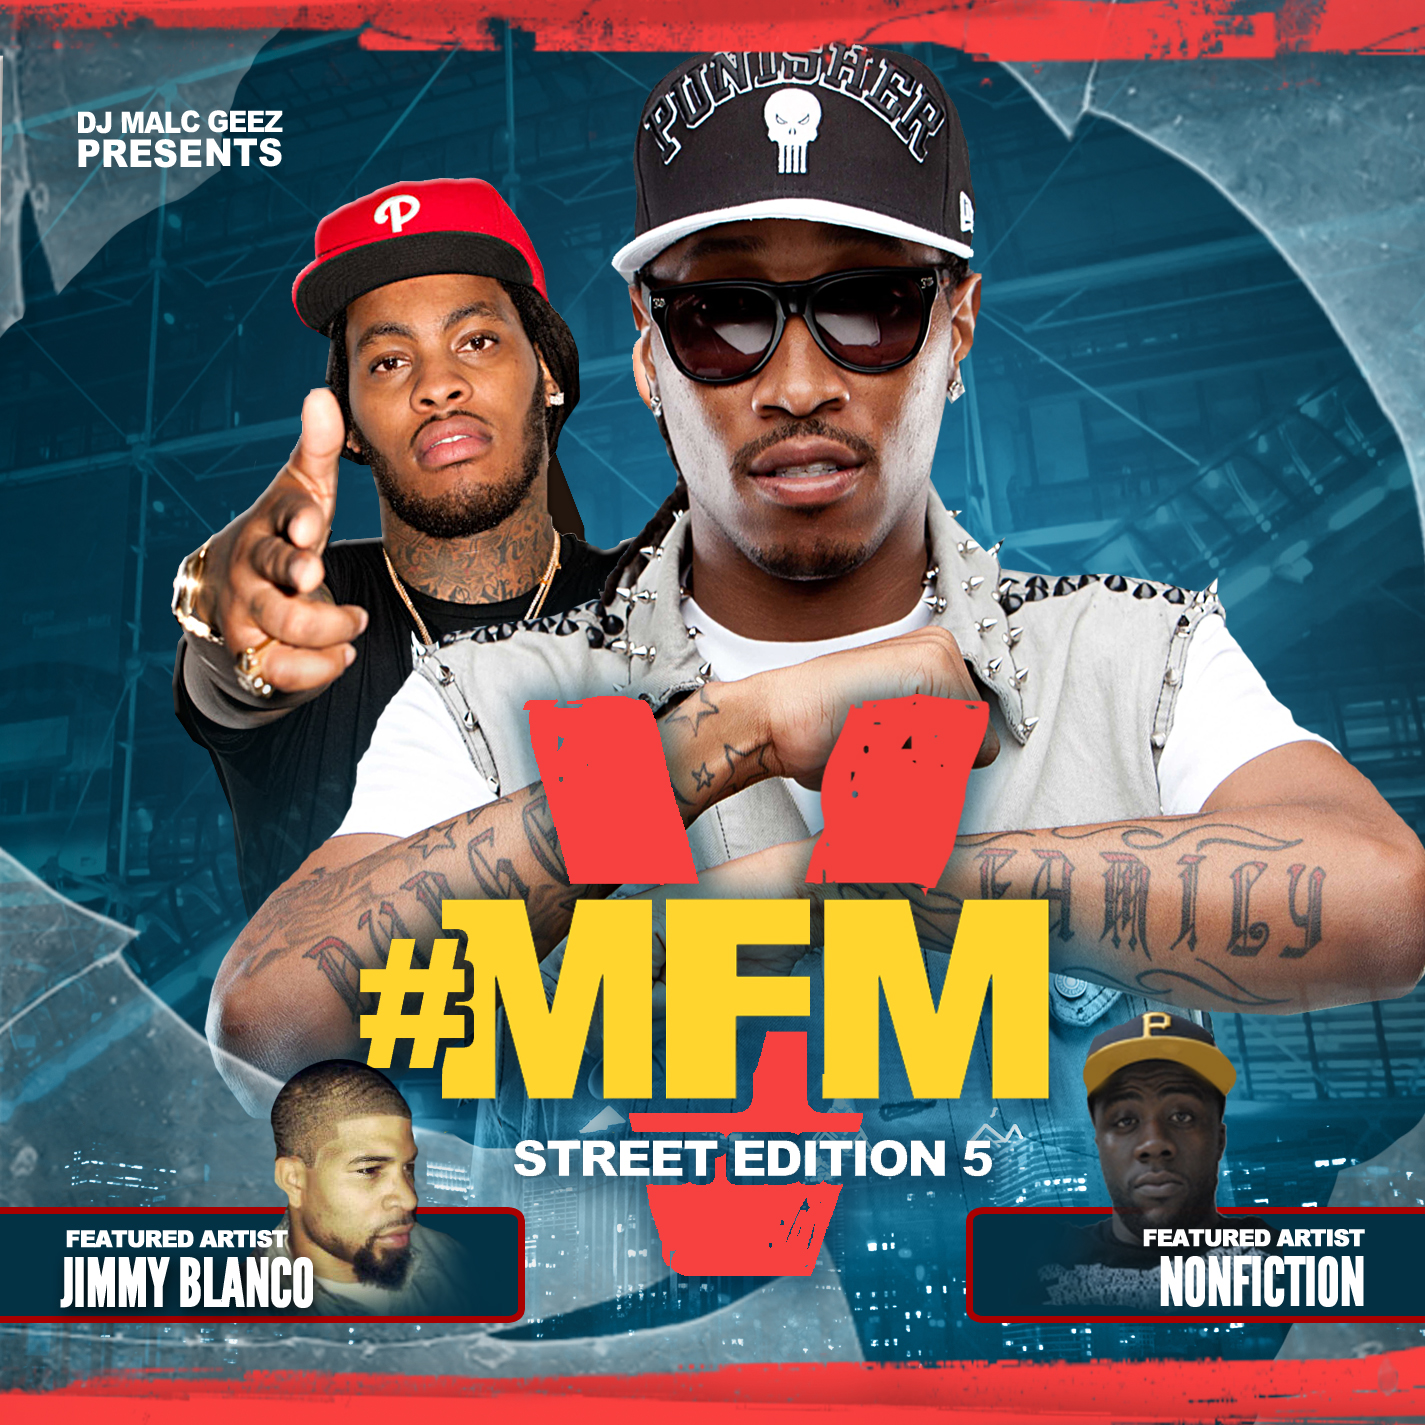 DJ Malc Geez - #MFM [Street Edition] 5 The Mixtape